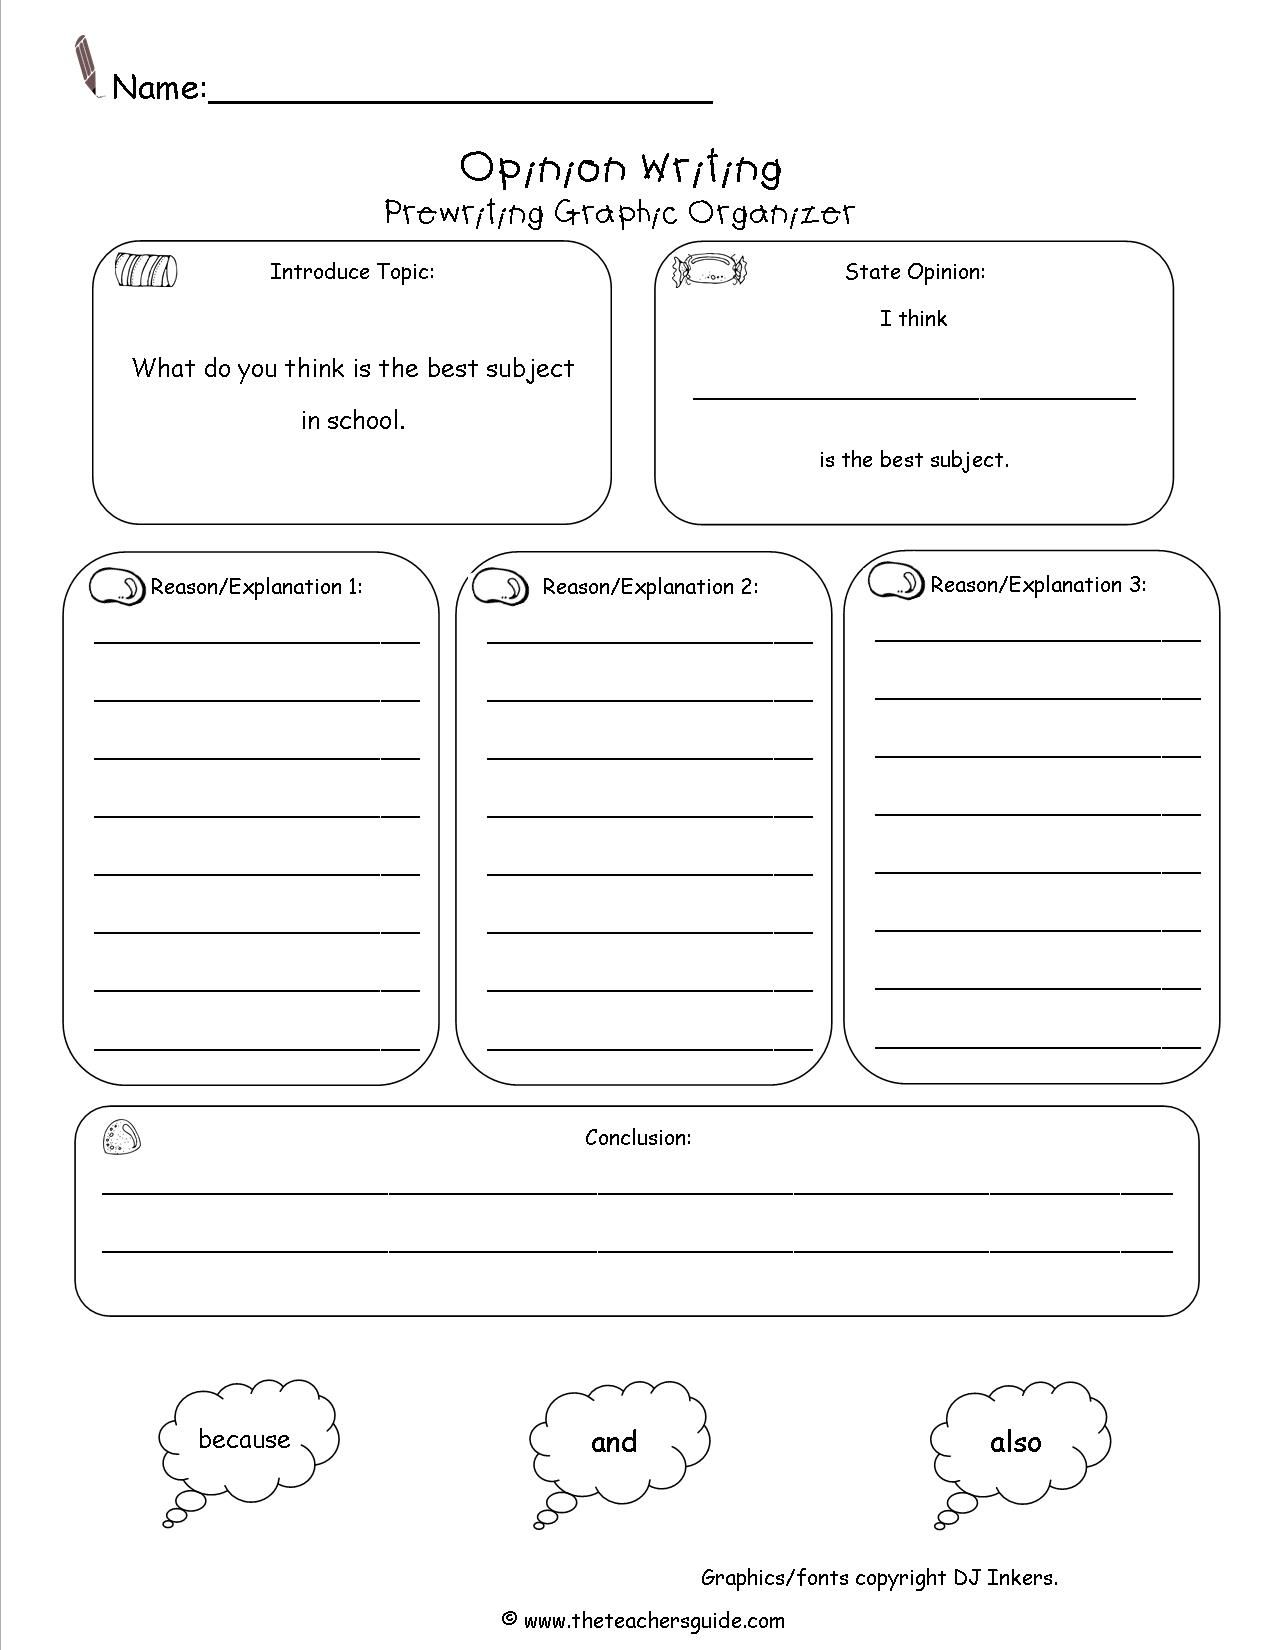 Free Writing And Language Arts From The Teacher S Guide Opinion Writing Graphic Organizer Opinion Writing Writing Graphic Organizers